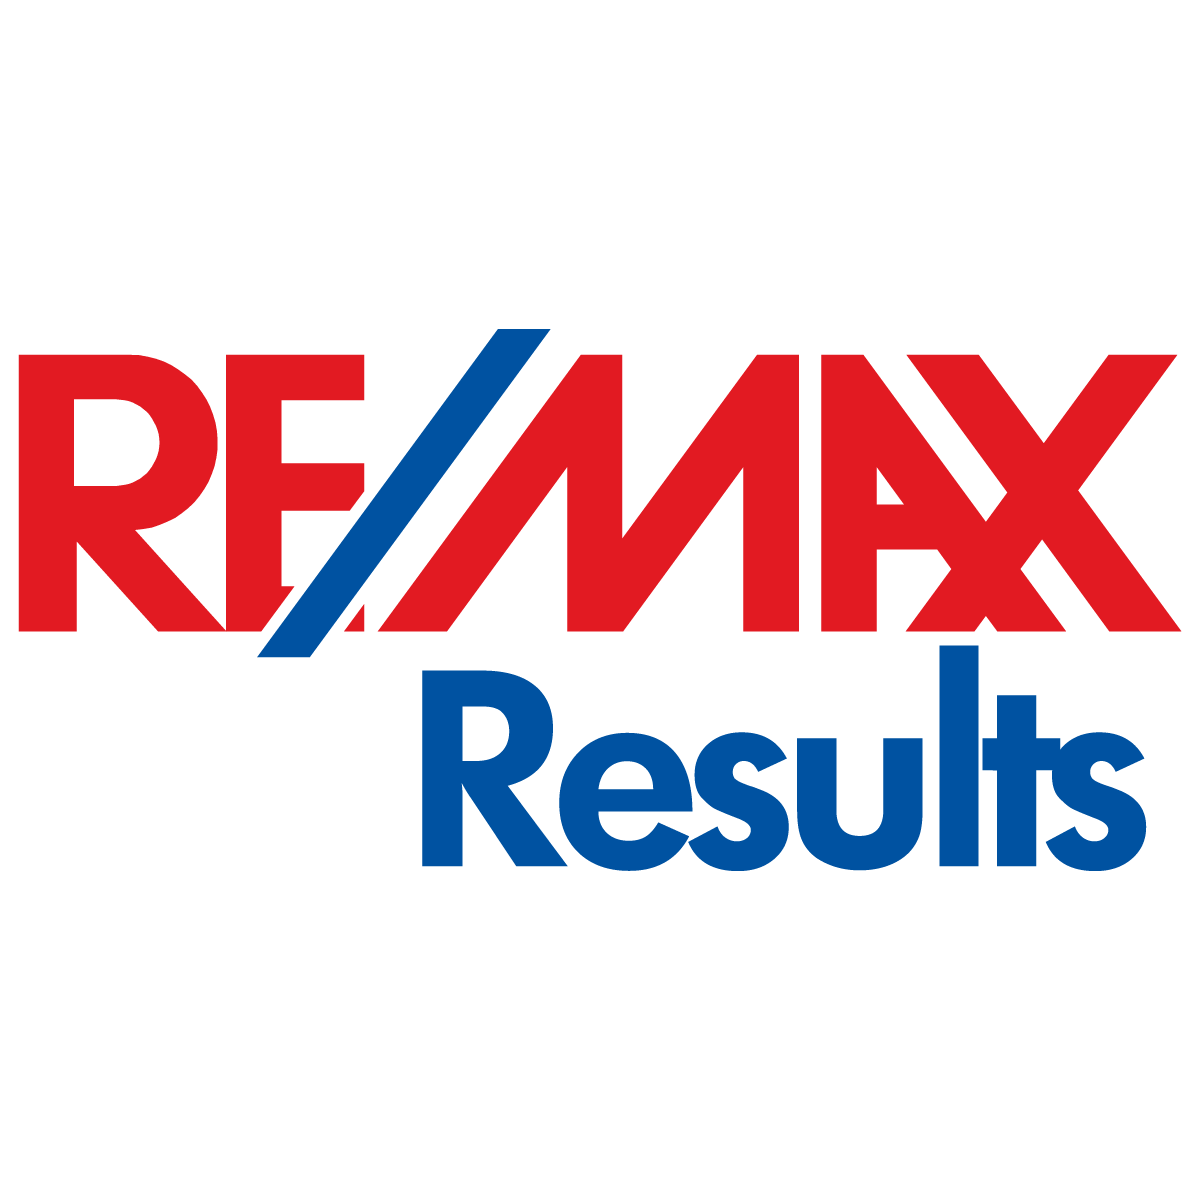 RE/MAX Results: Joe Houghton